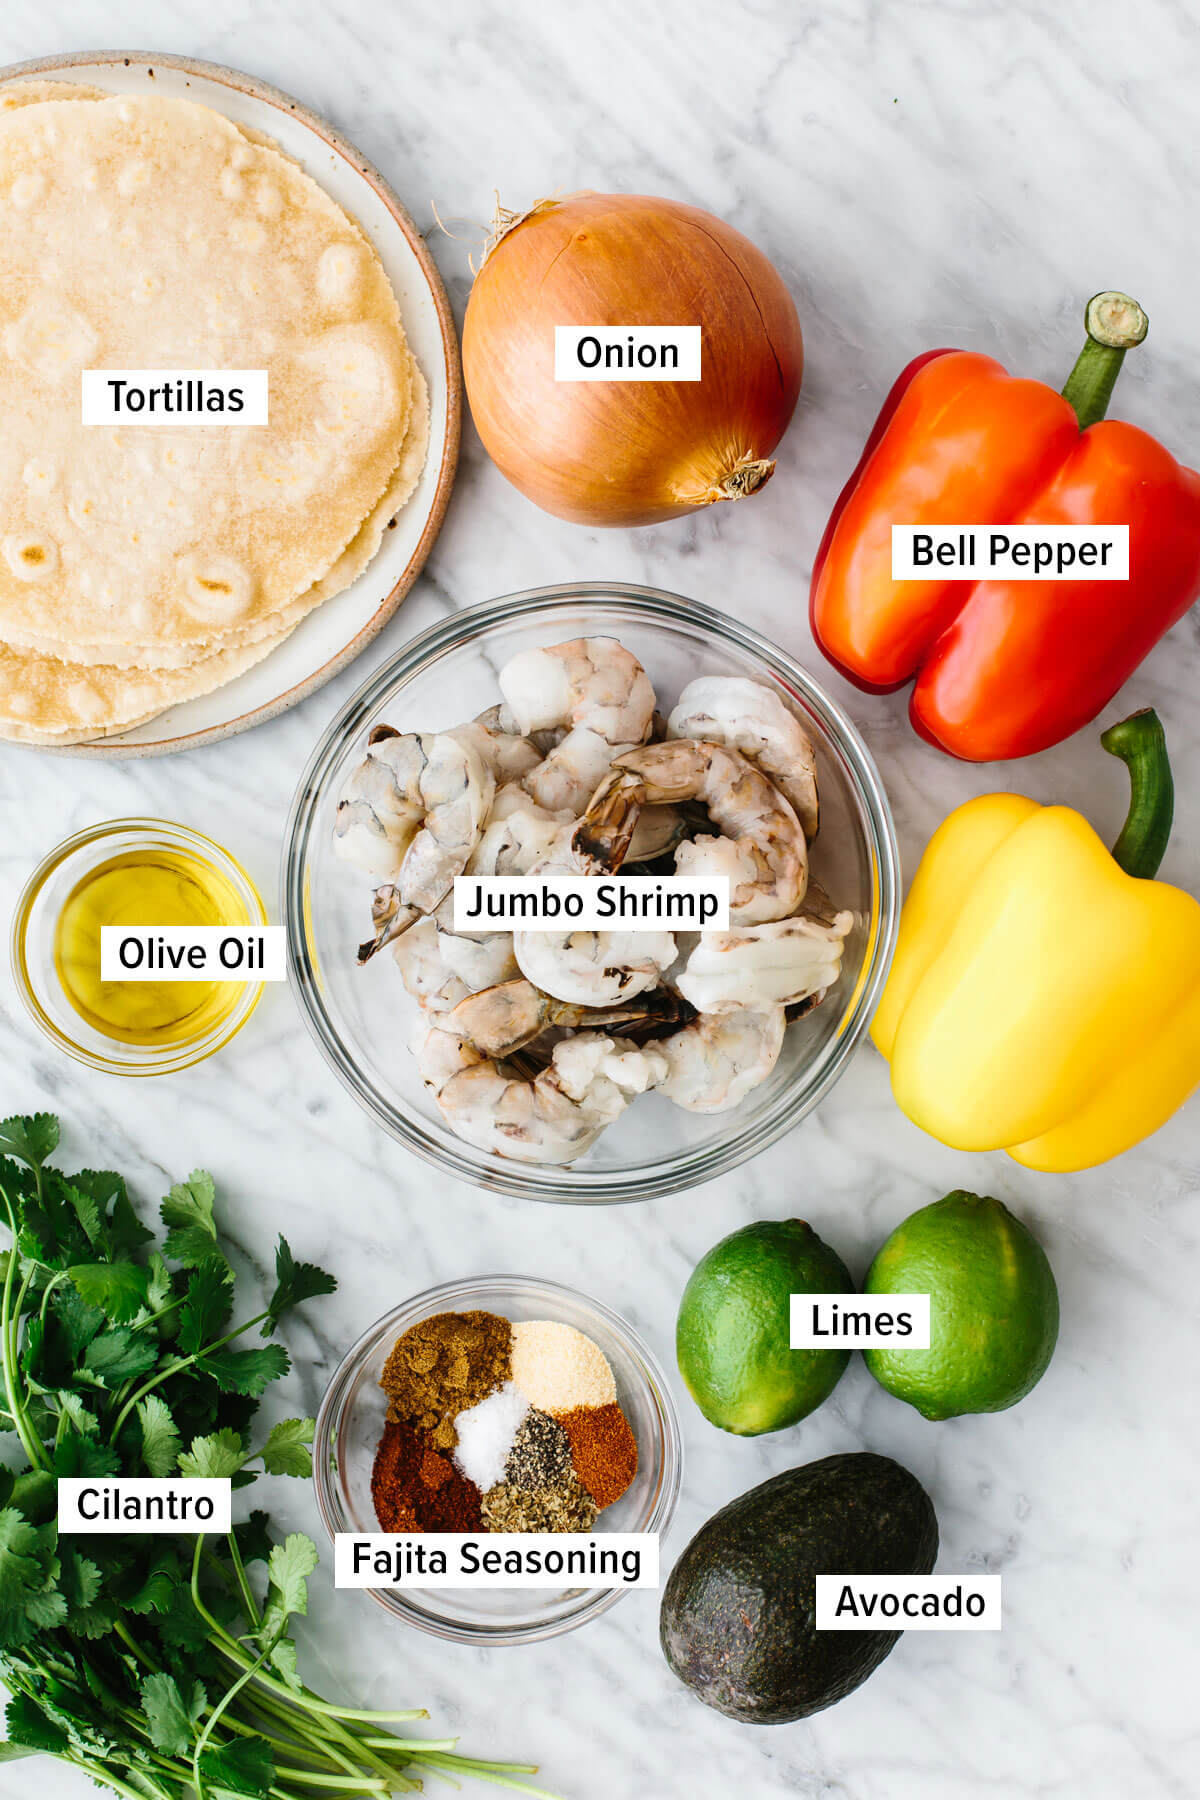 Ingredients for shrimp fajitas on a table.